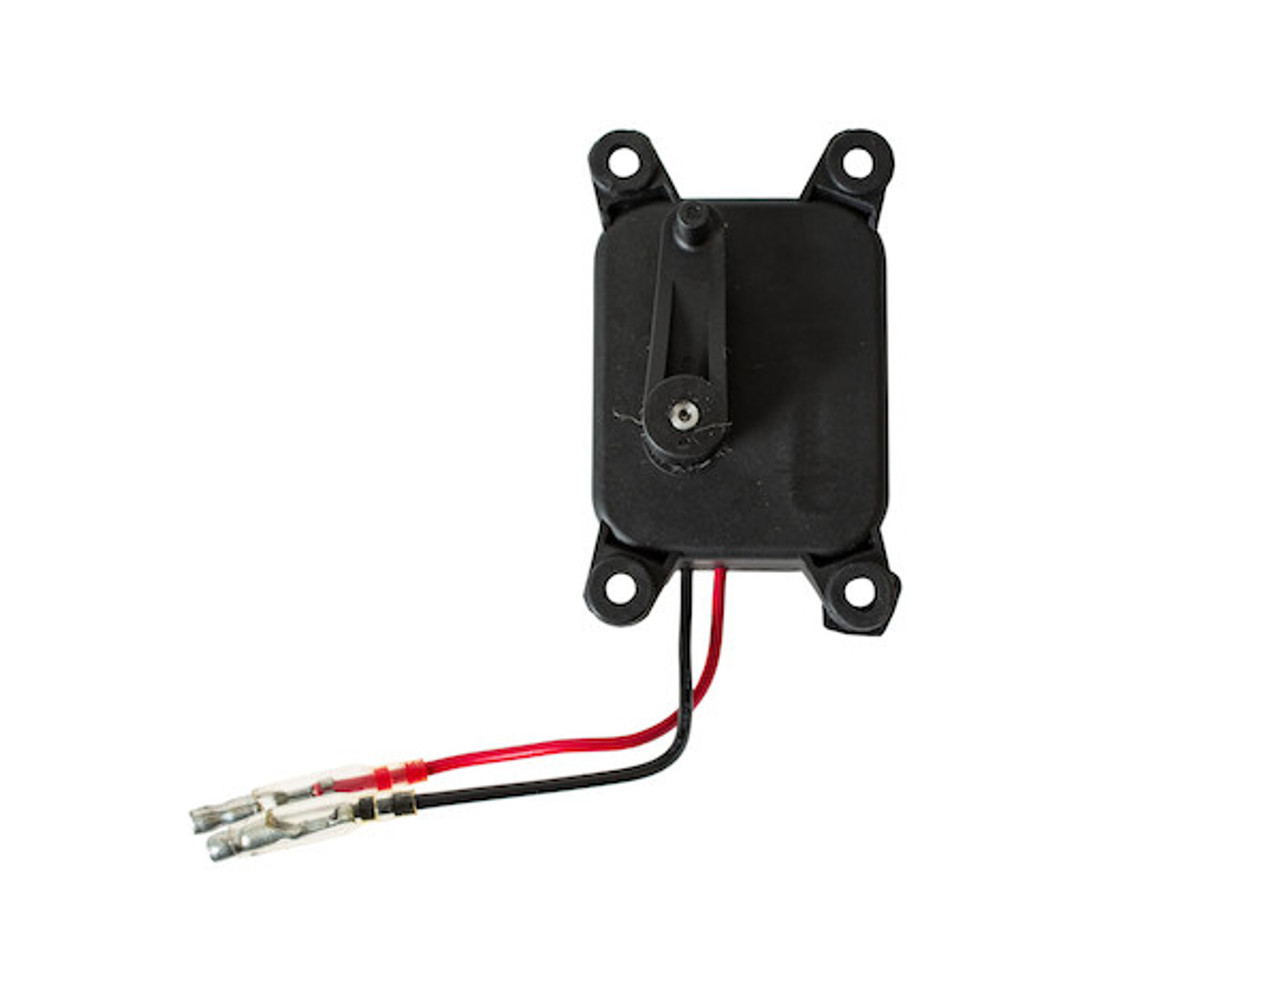 BUYERS 1411907 Replacement Universal Electric Throttle Motor With Terminals for SaltDogg Salt Spreader 3